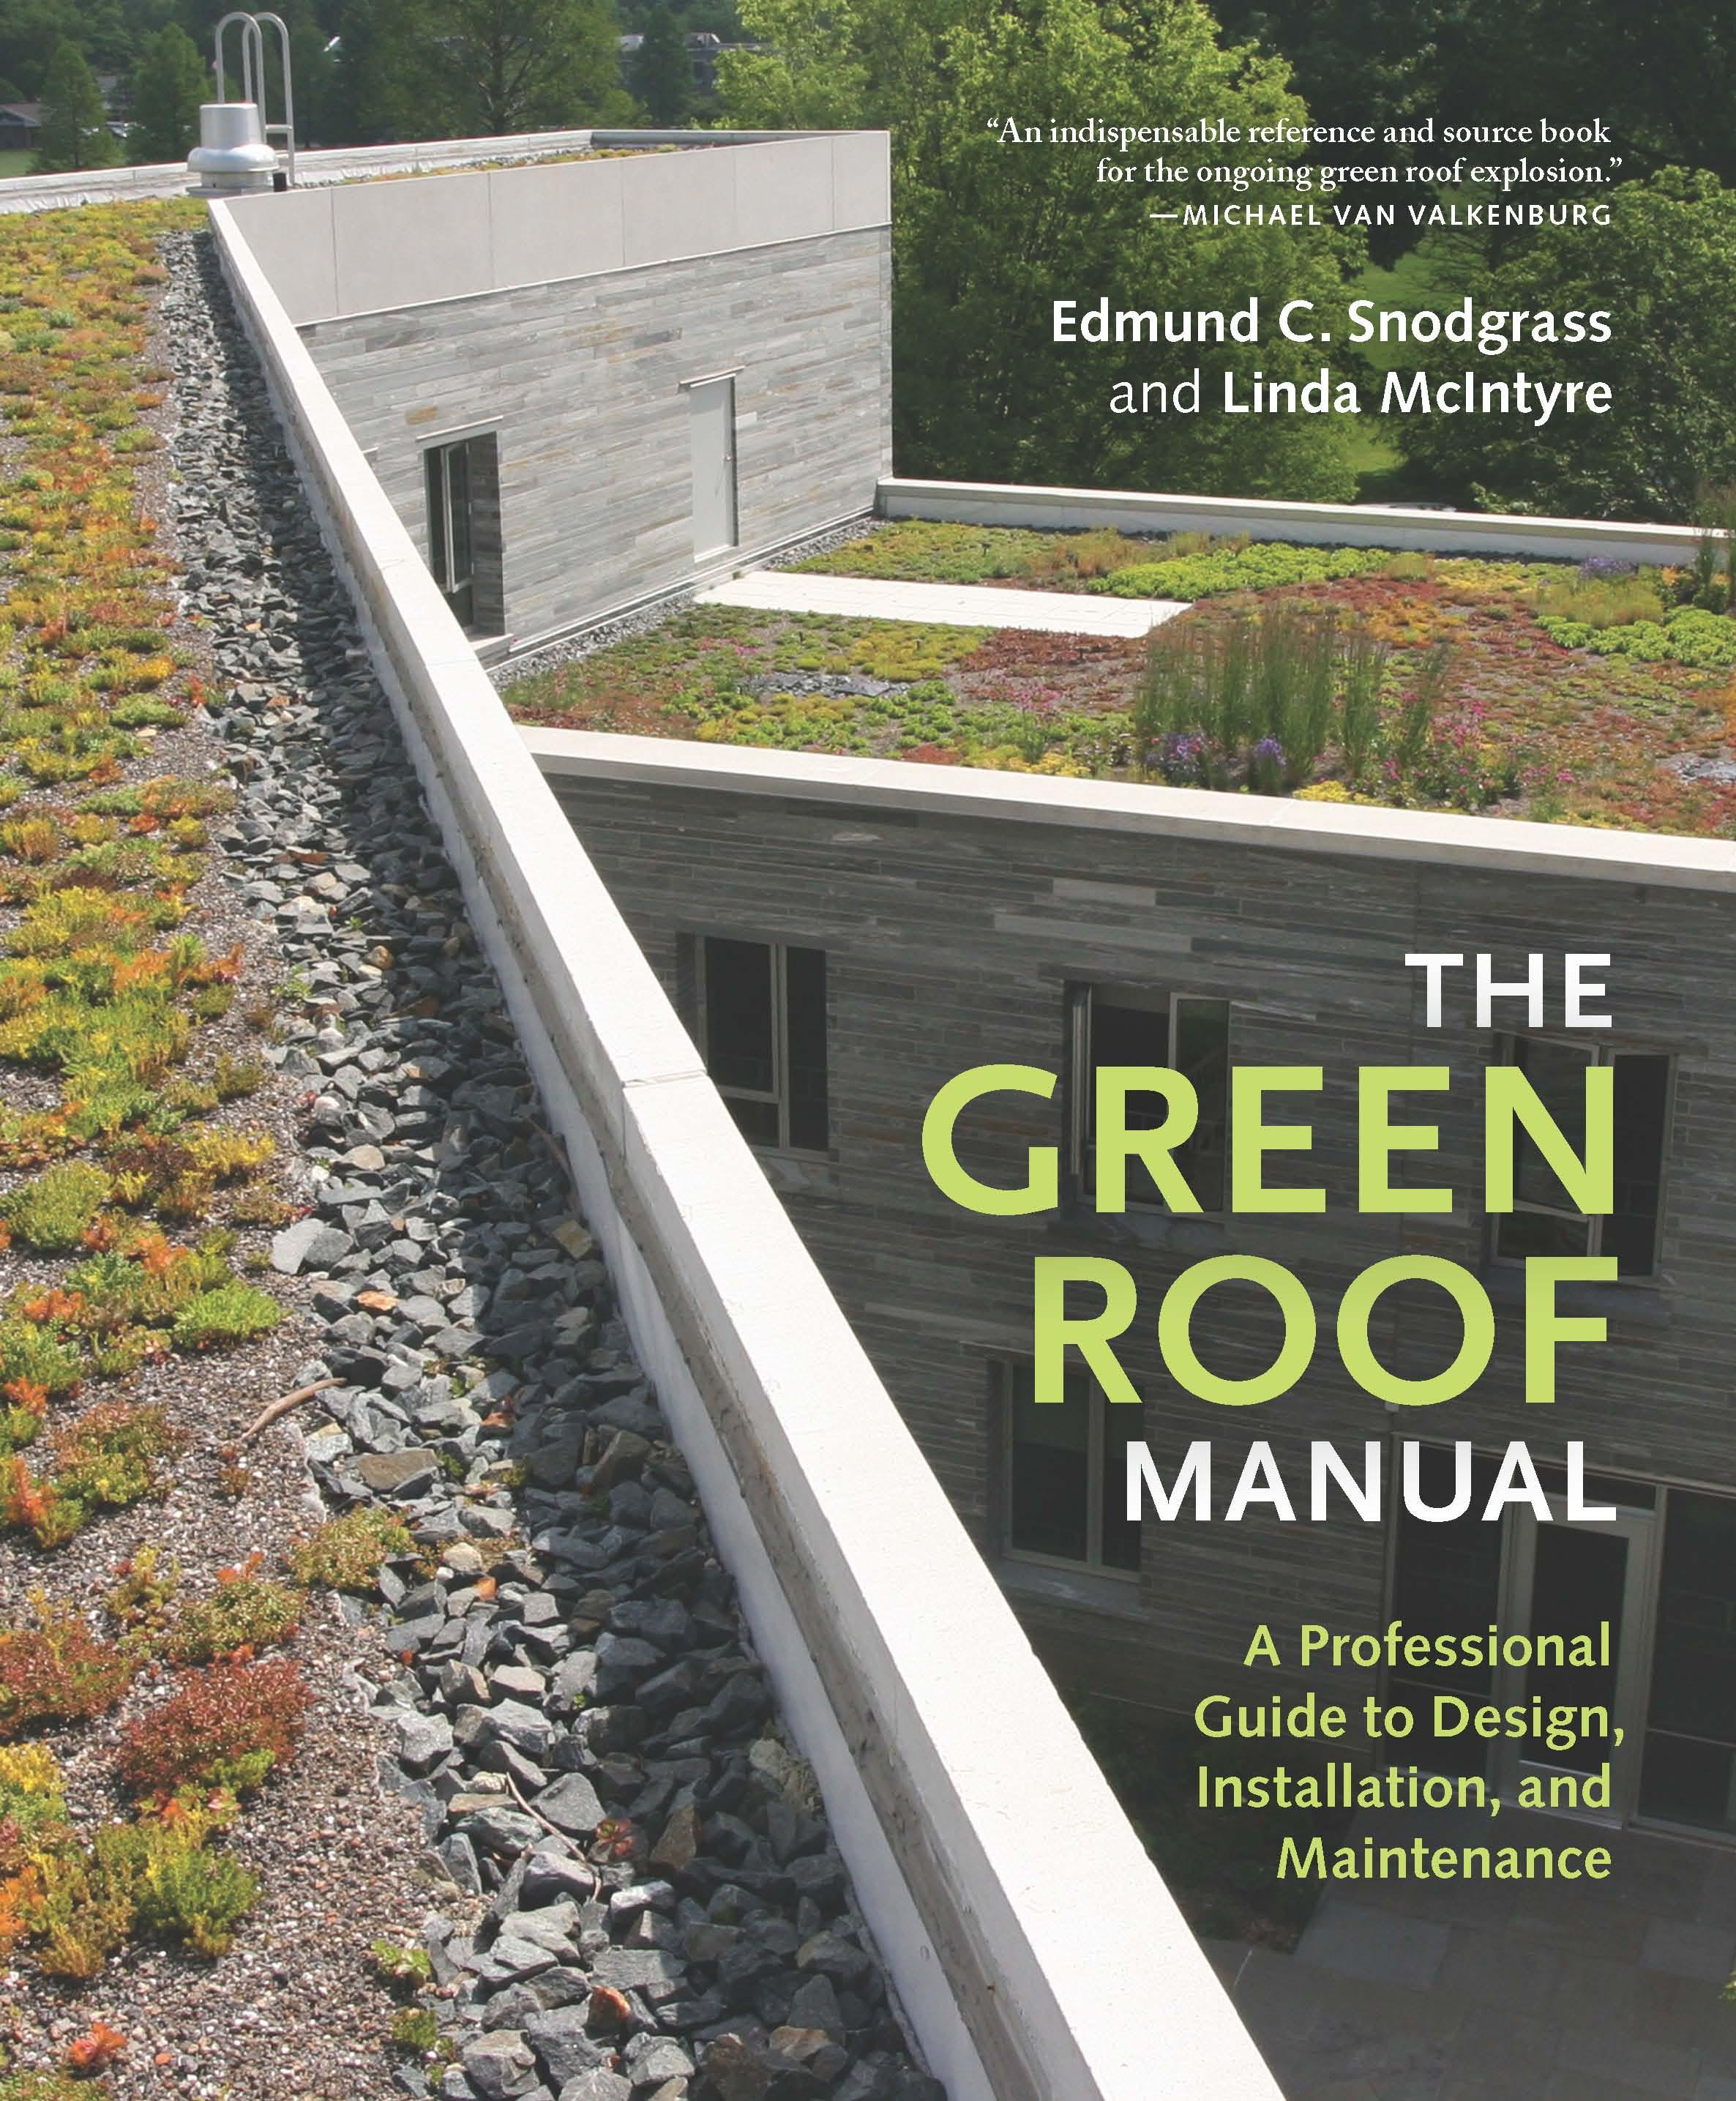 The Green Roof Manual: A Professional Guide to Design, Installation, and Maintenance EB9781604692570